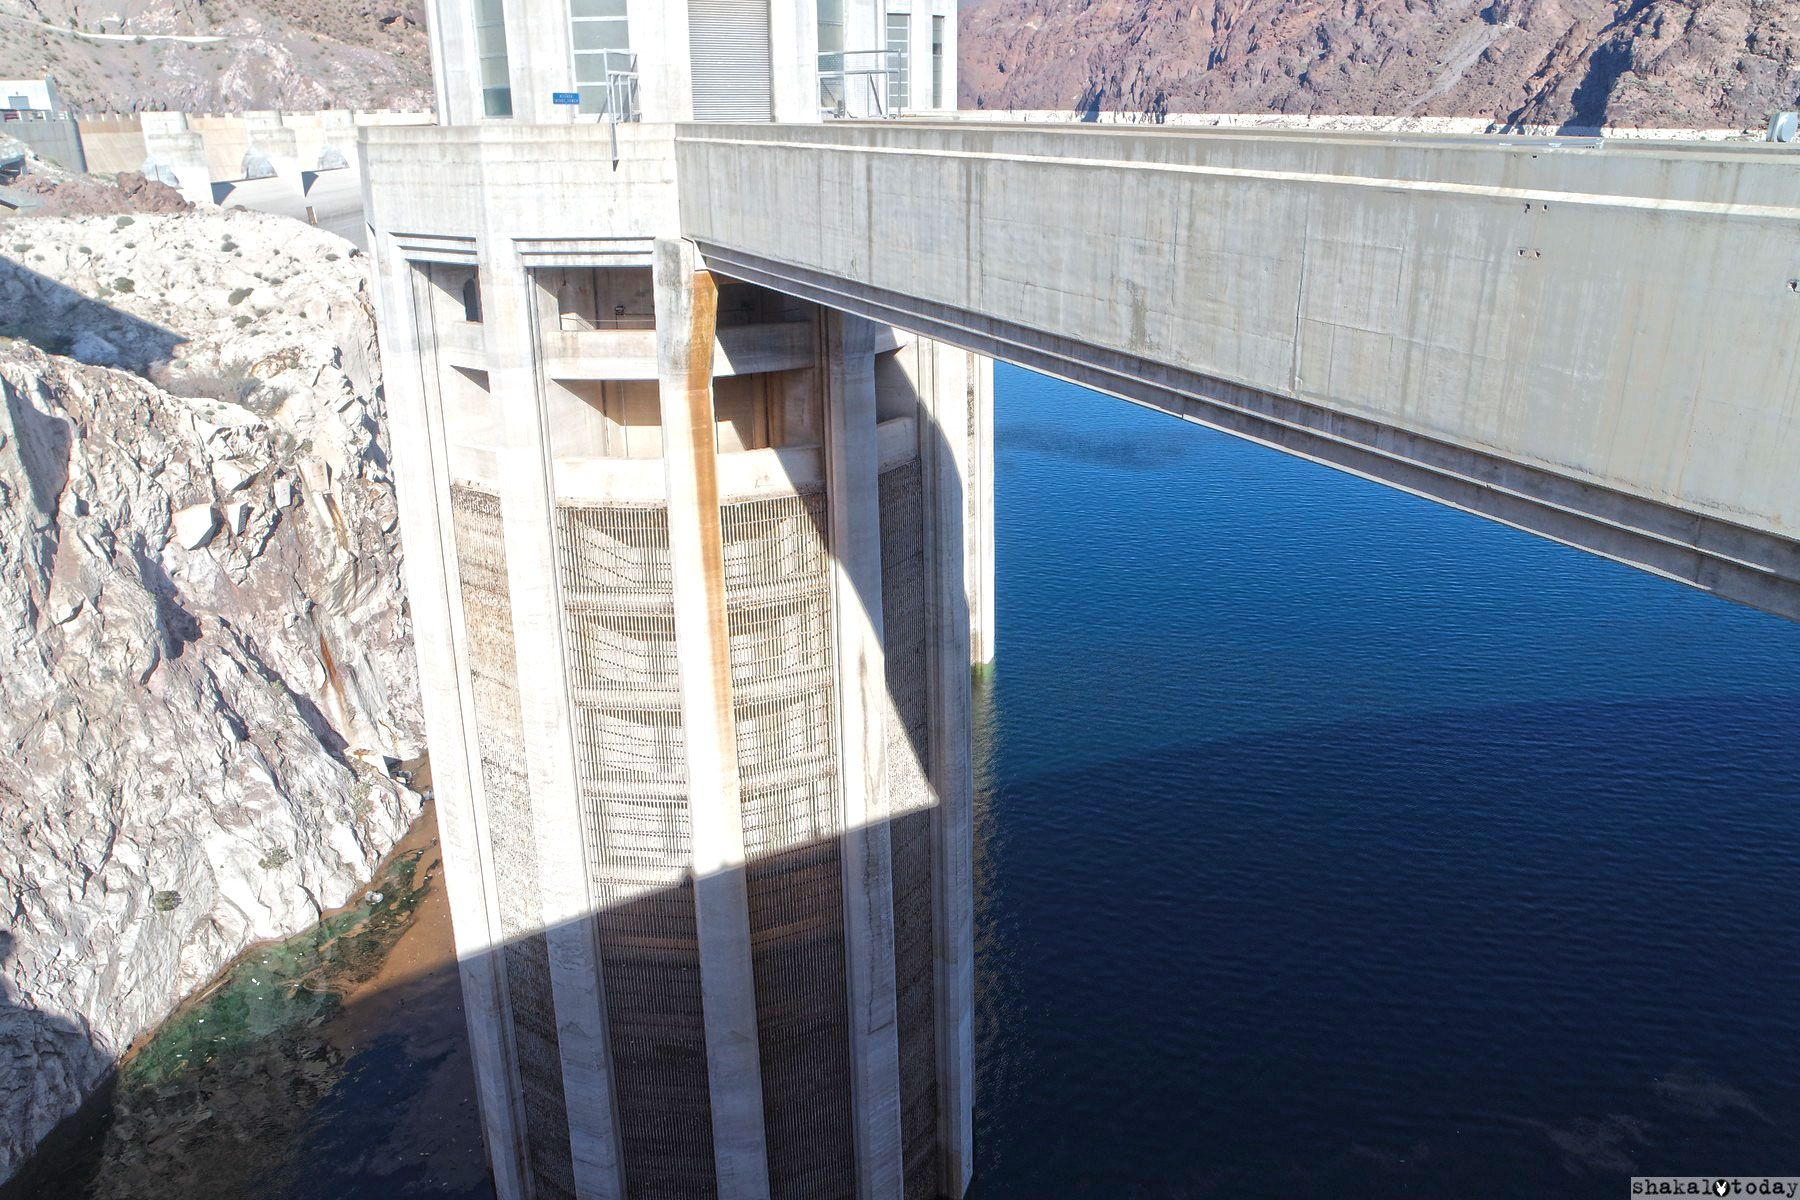 Shakal-Today-Hoover-Dam-0043.JPG